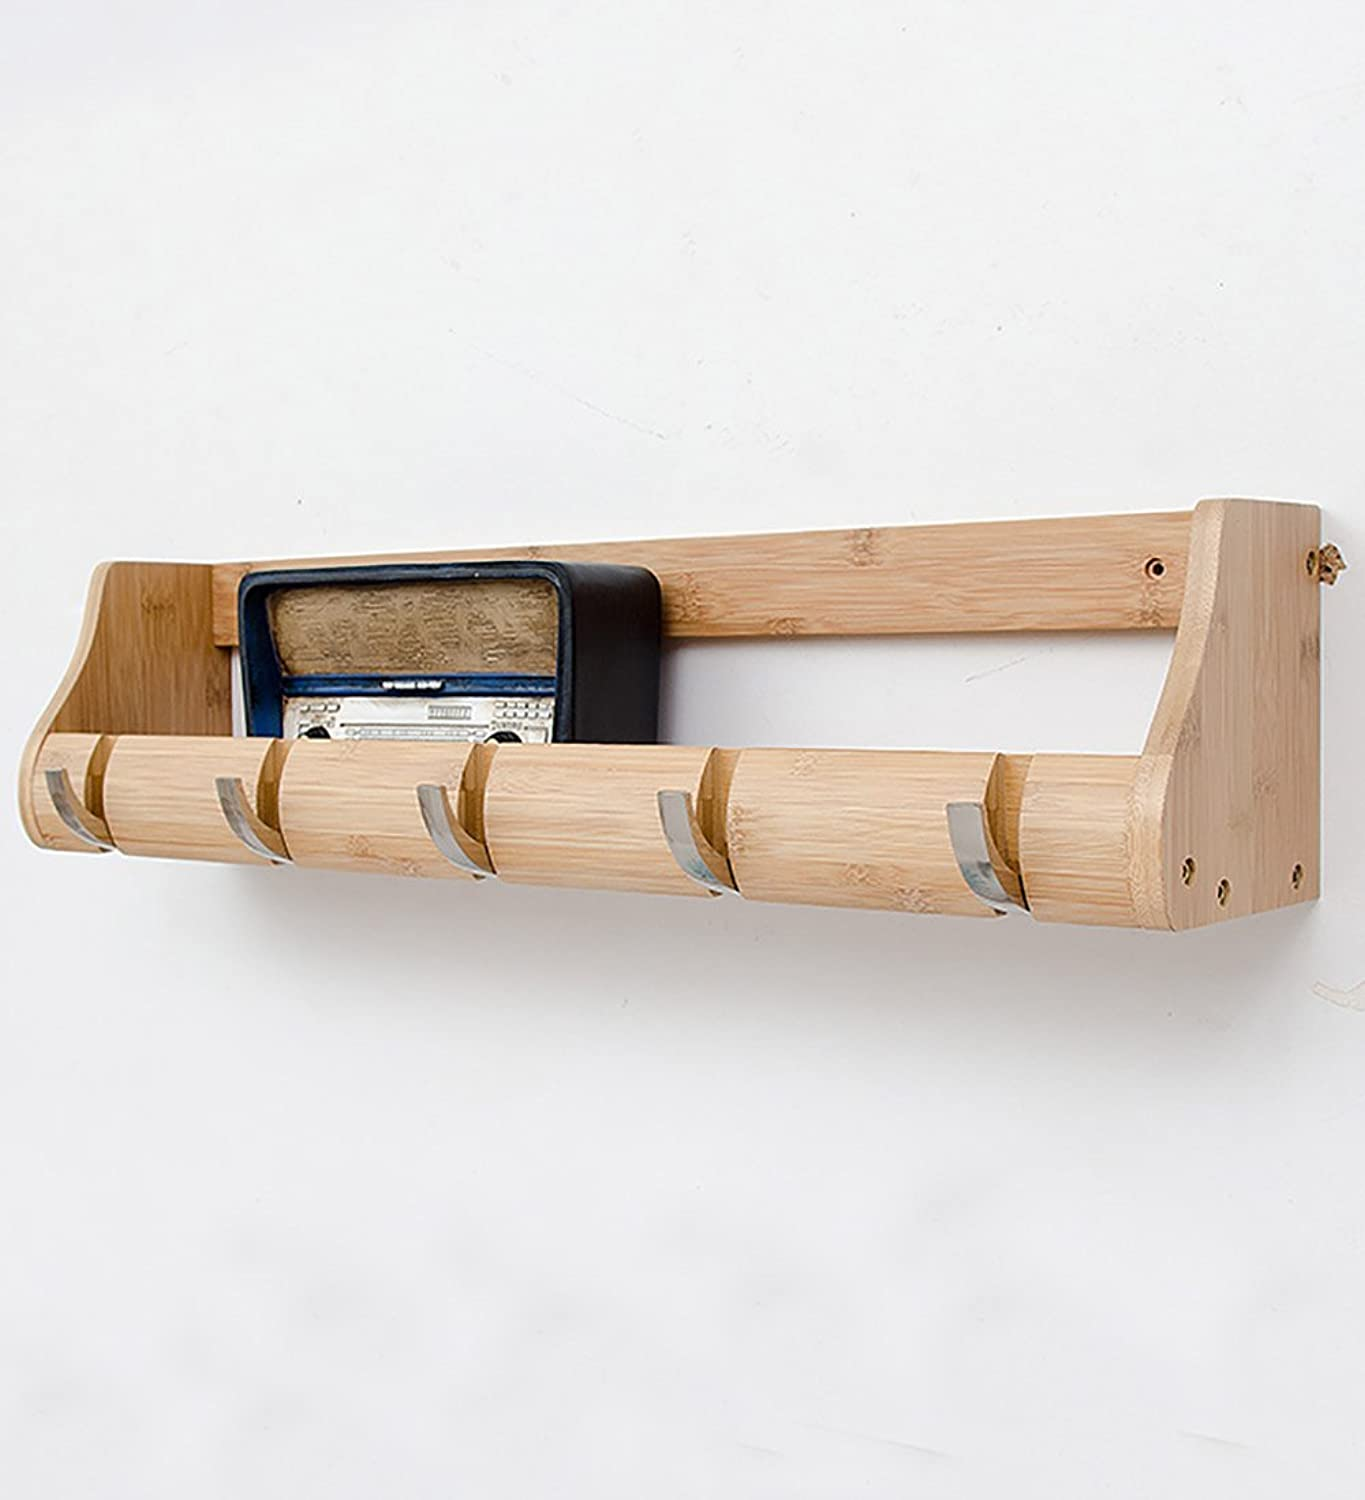 WUFENG Wall-mounted Coat Rack Bamboo Simple Shelf Metal Hook Available In 15 Styles High 14.5cm ( color   Natural 5 hooks )